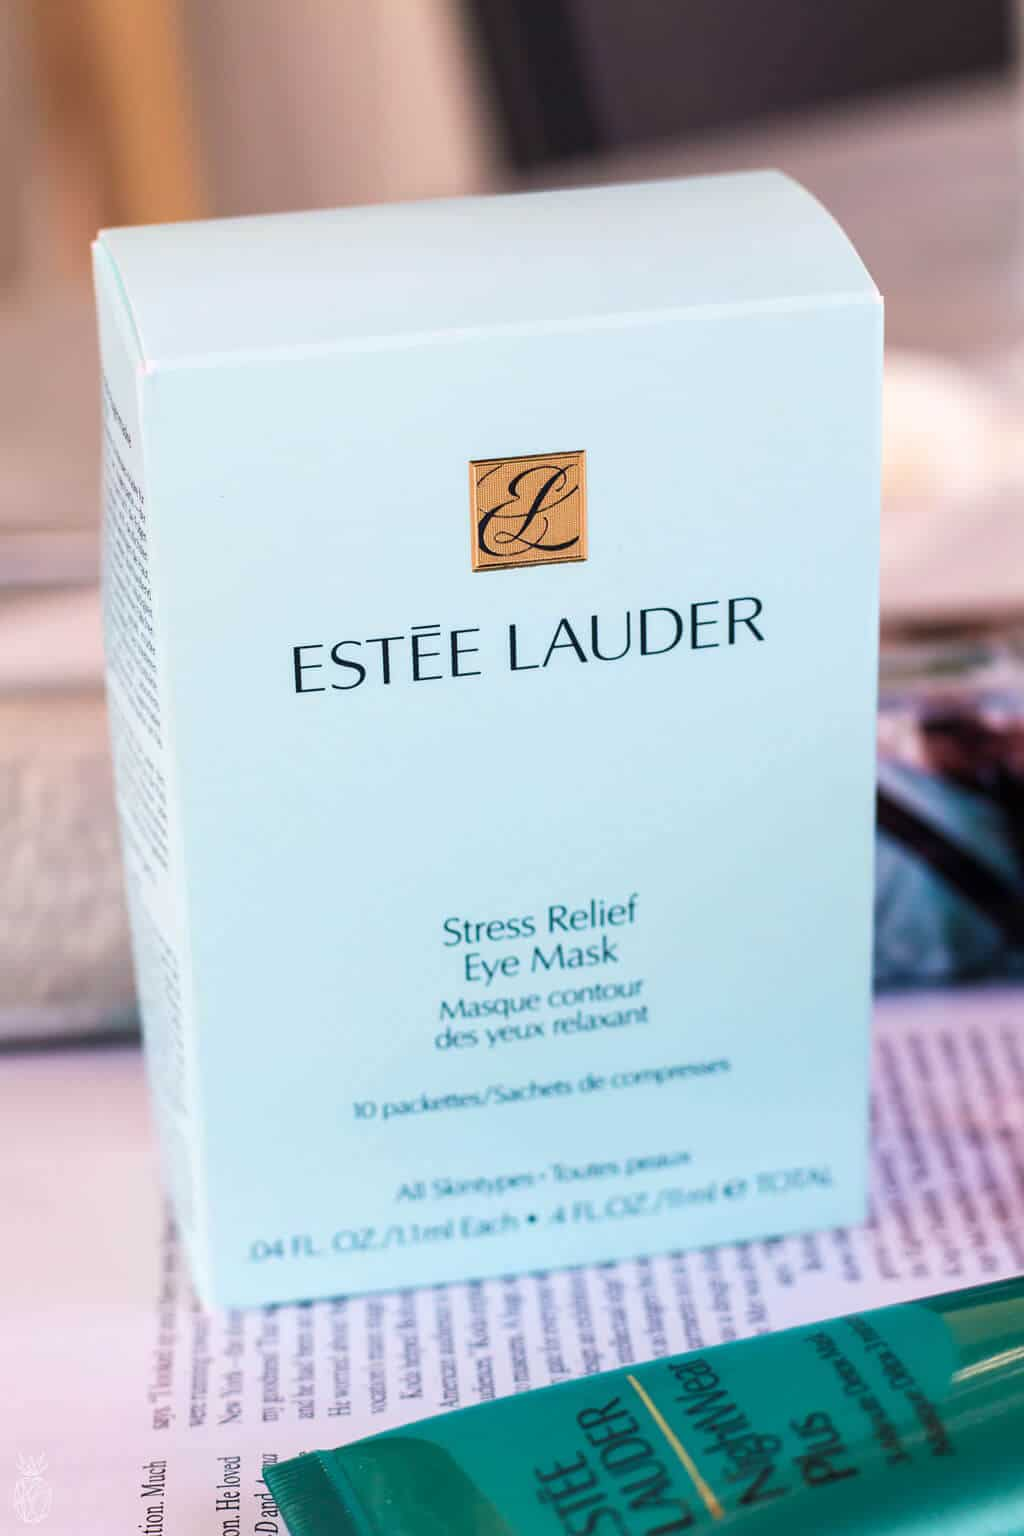 ESTEE LAUDER - STRESSBeauty On The Road : 3 beauty products that will keep your skin fresh & dewy when traveling - RELIEF EYE MASK review